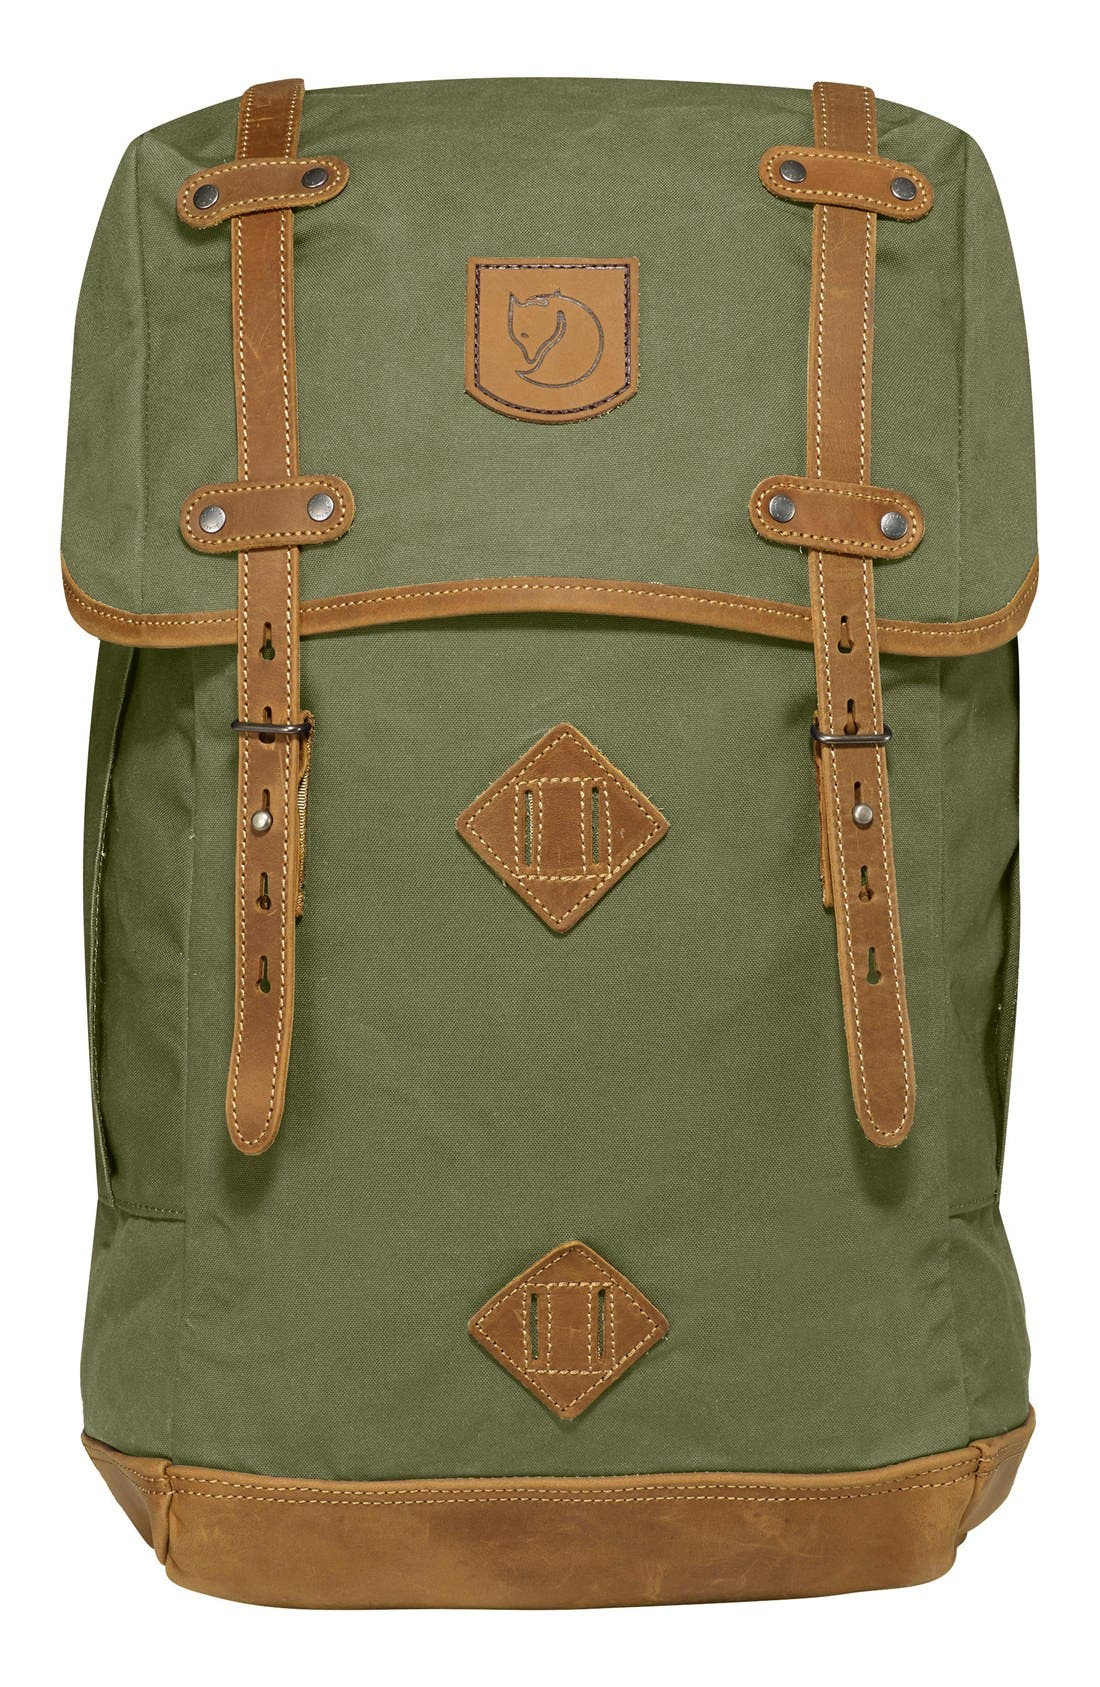 FJÄLLRÄVEN Rucksack No. 21 Large Backpack